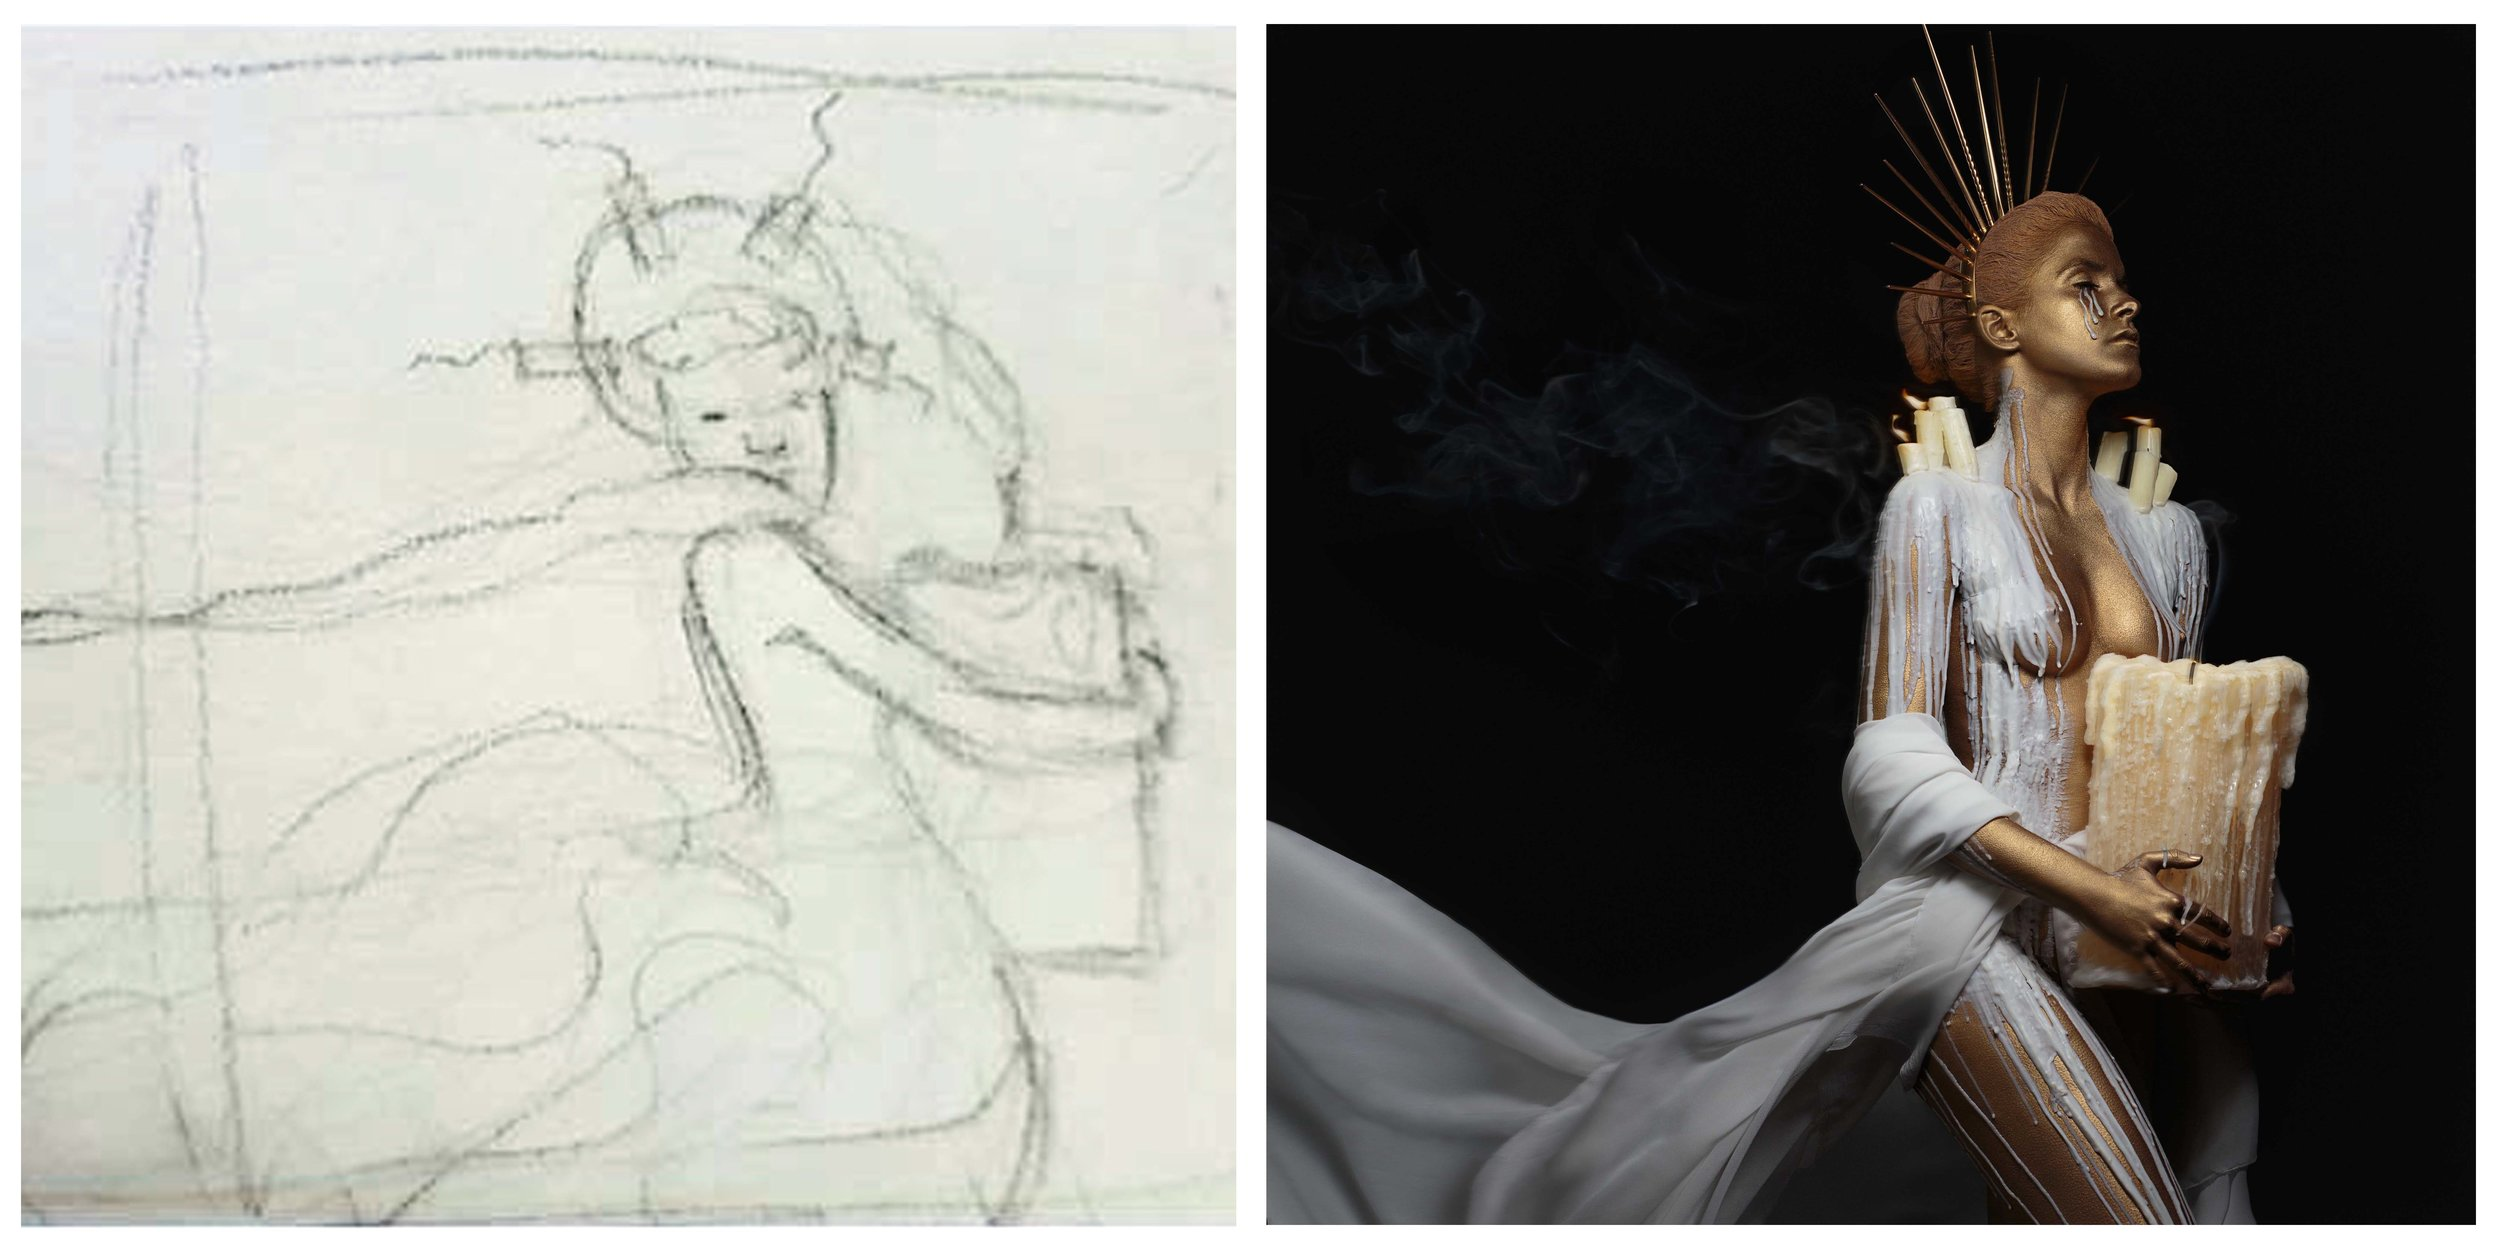 The proess of turning the drawing on the left into the photograph on the right.